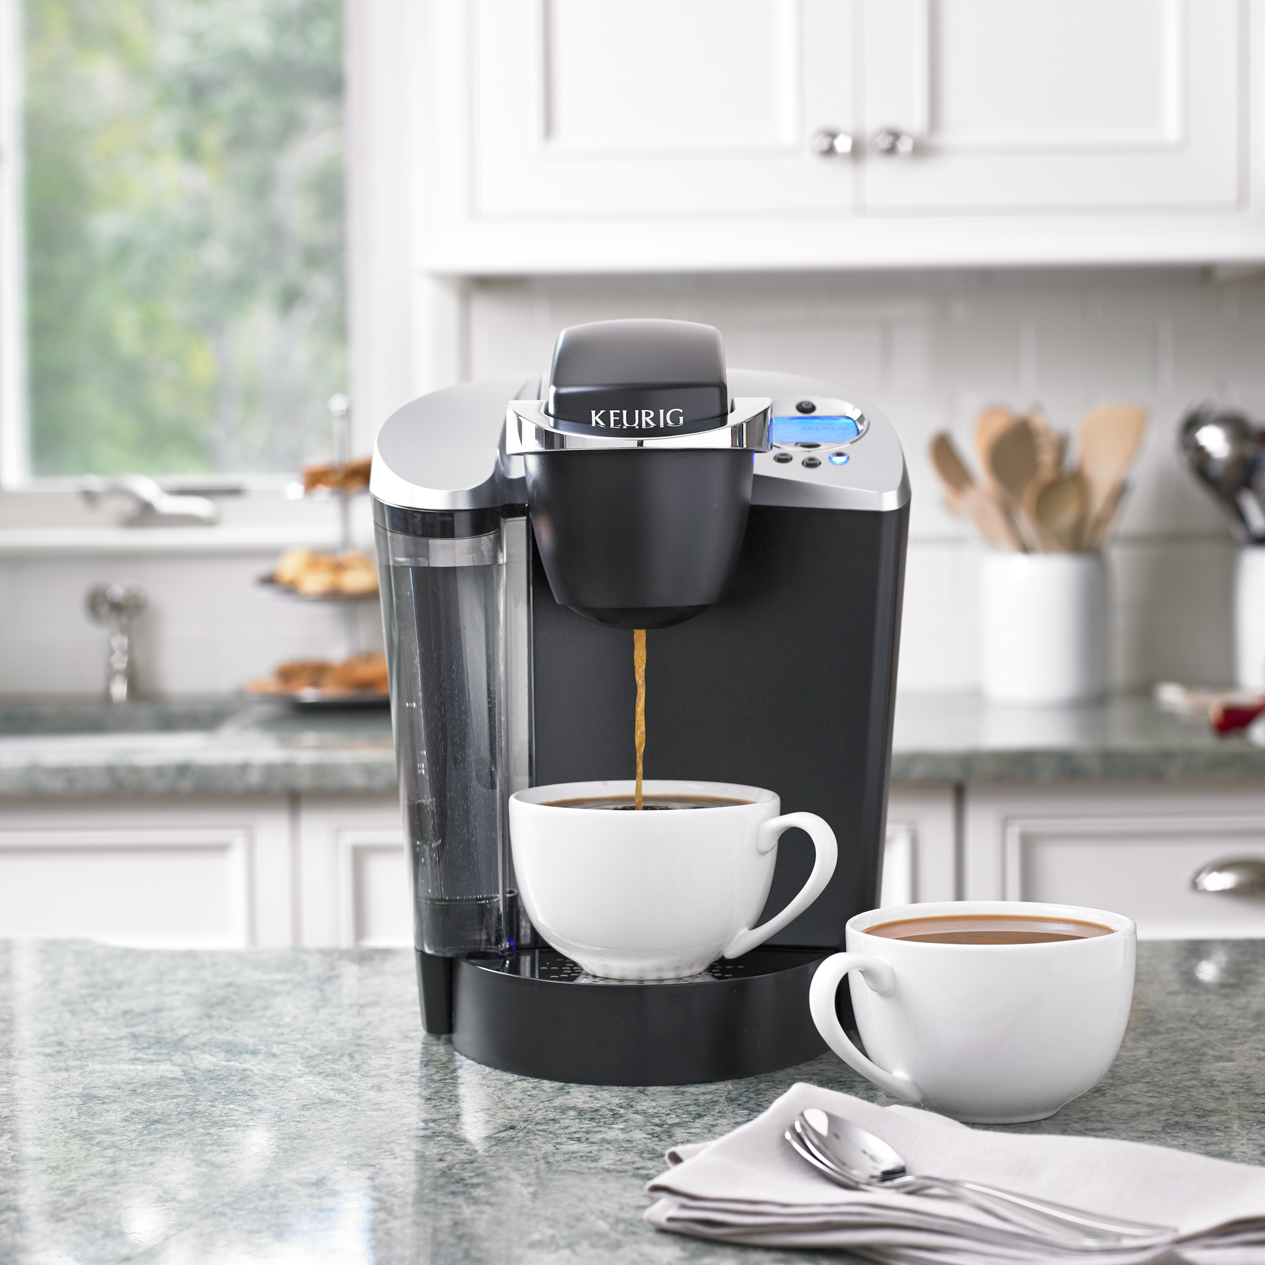 Heath_Robbins_Keurig_2013-09-26_Holiday_Guide_Seconds_018_RT